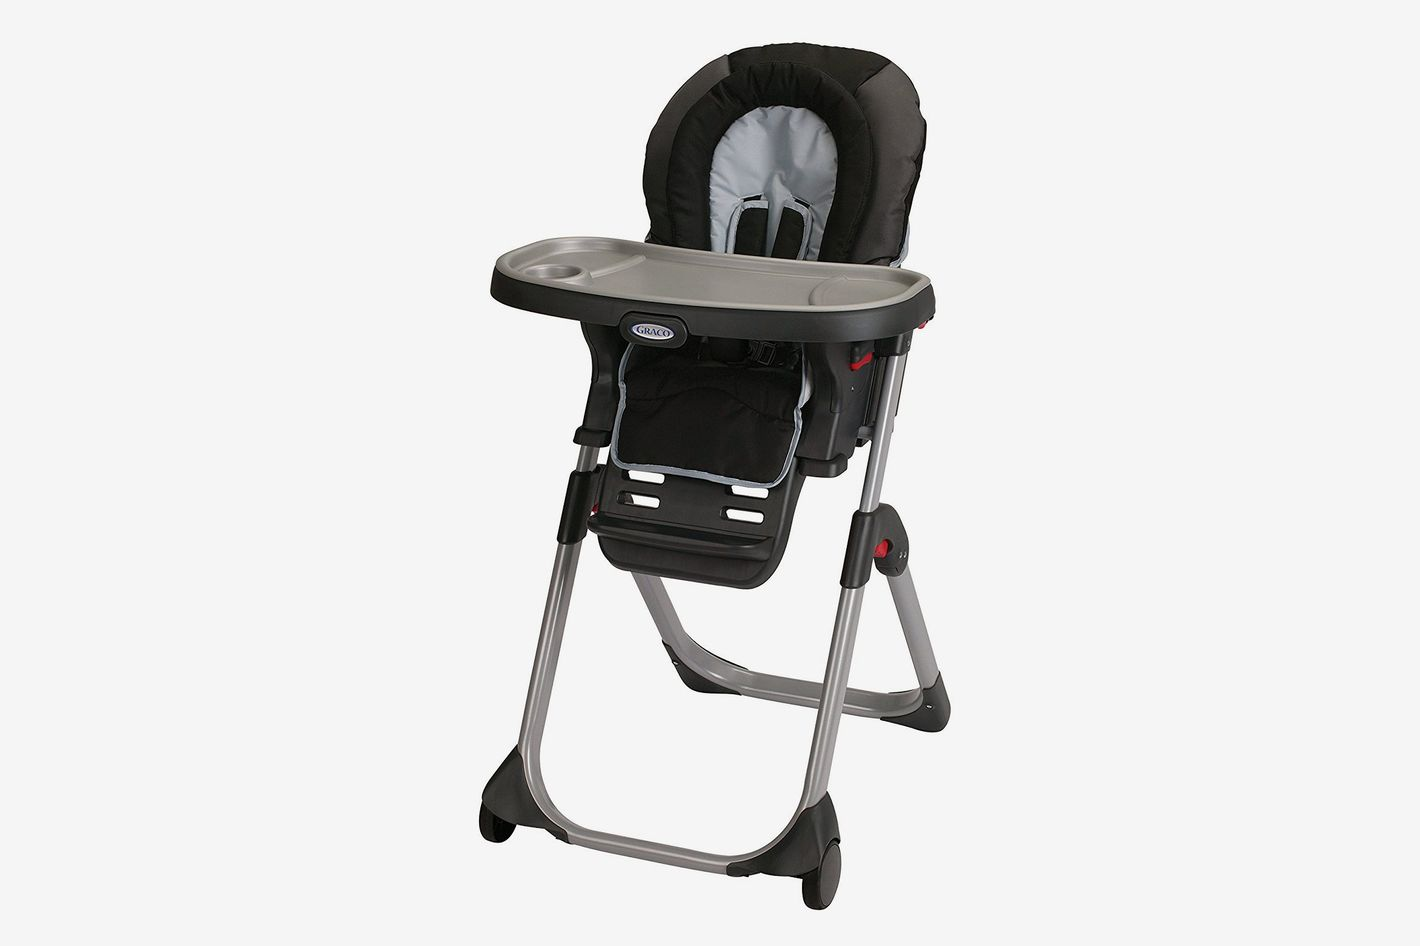 Graco DuoDiner LX Baby 3-in-1 High Chair